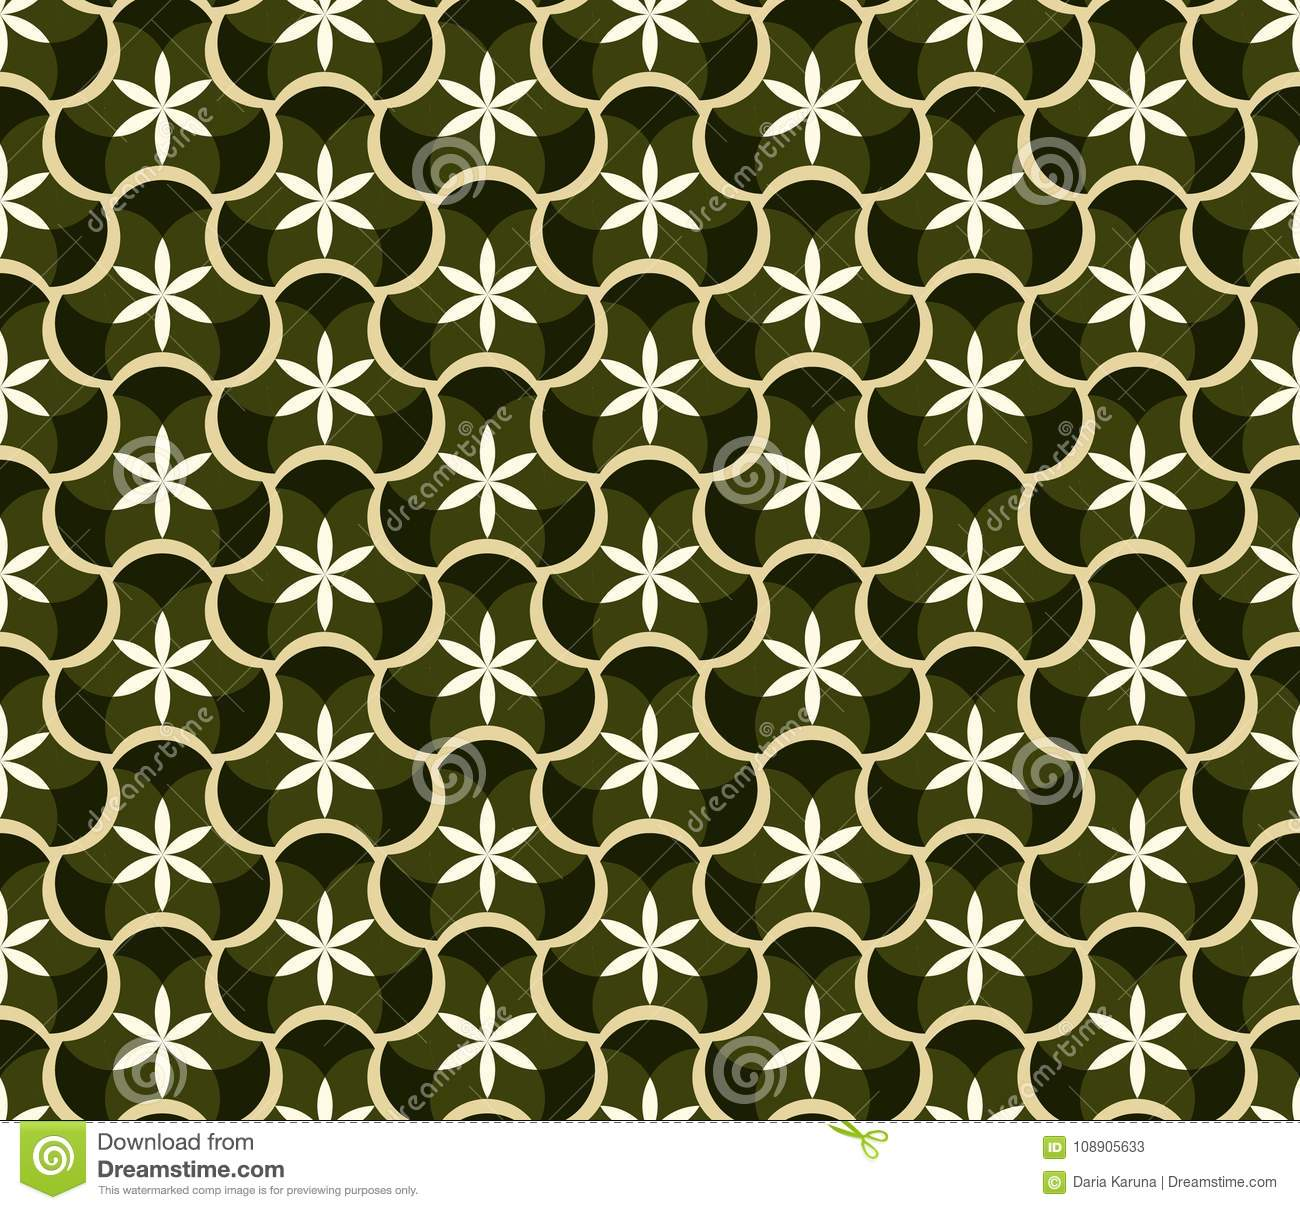 Abstract Seamless Pattern With Floral Patterns. Geometric Mosaic ...